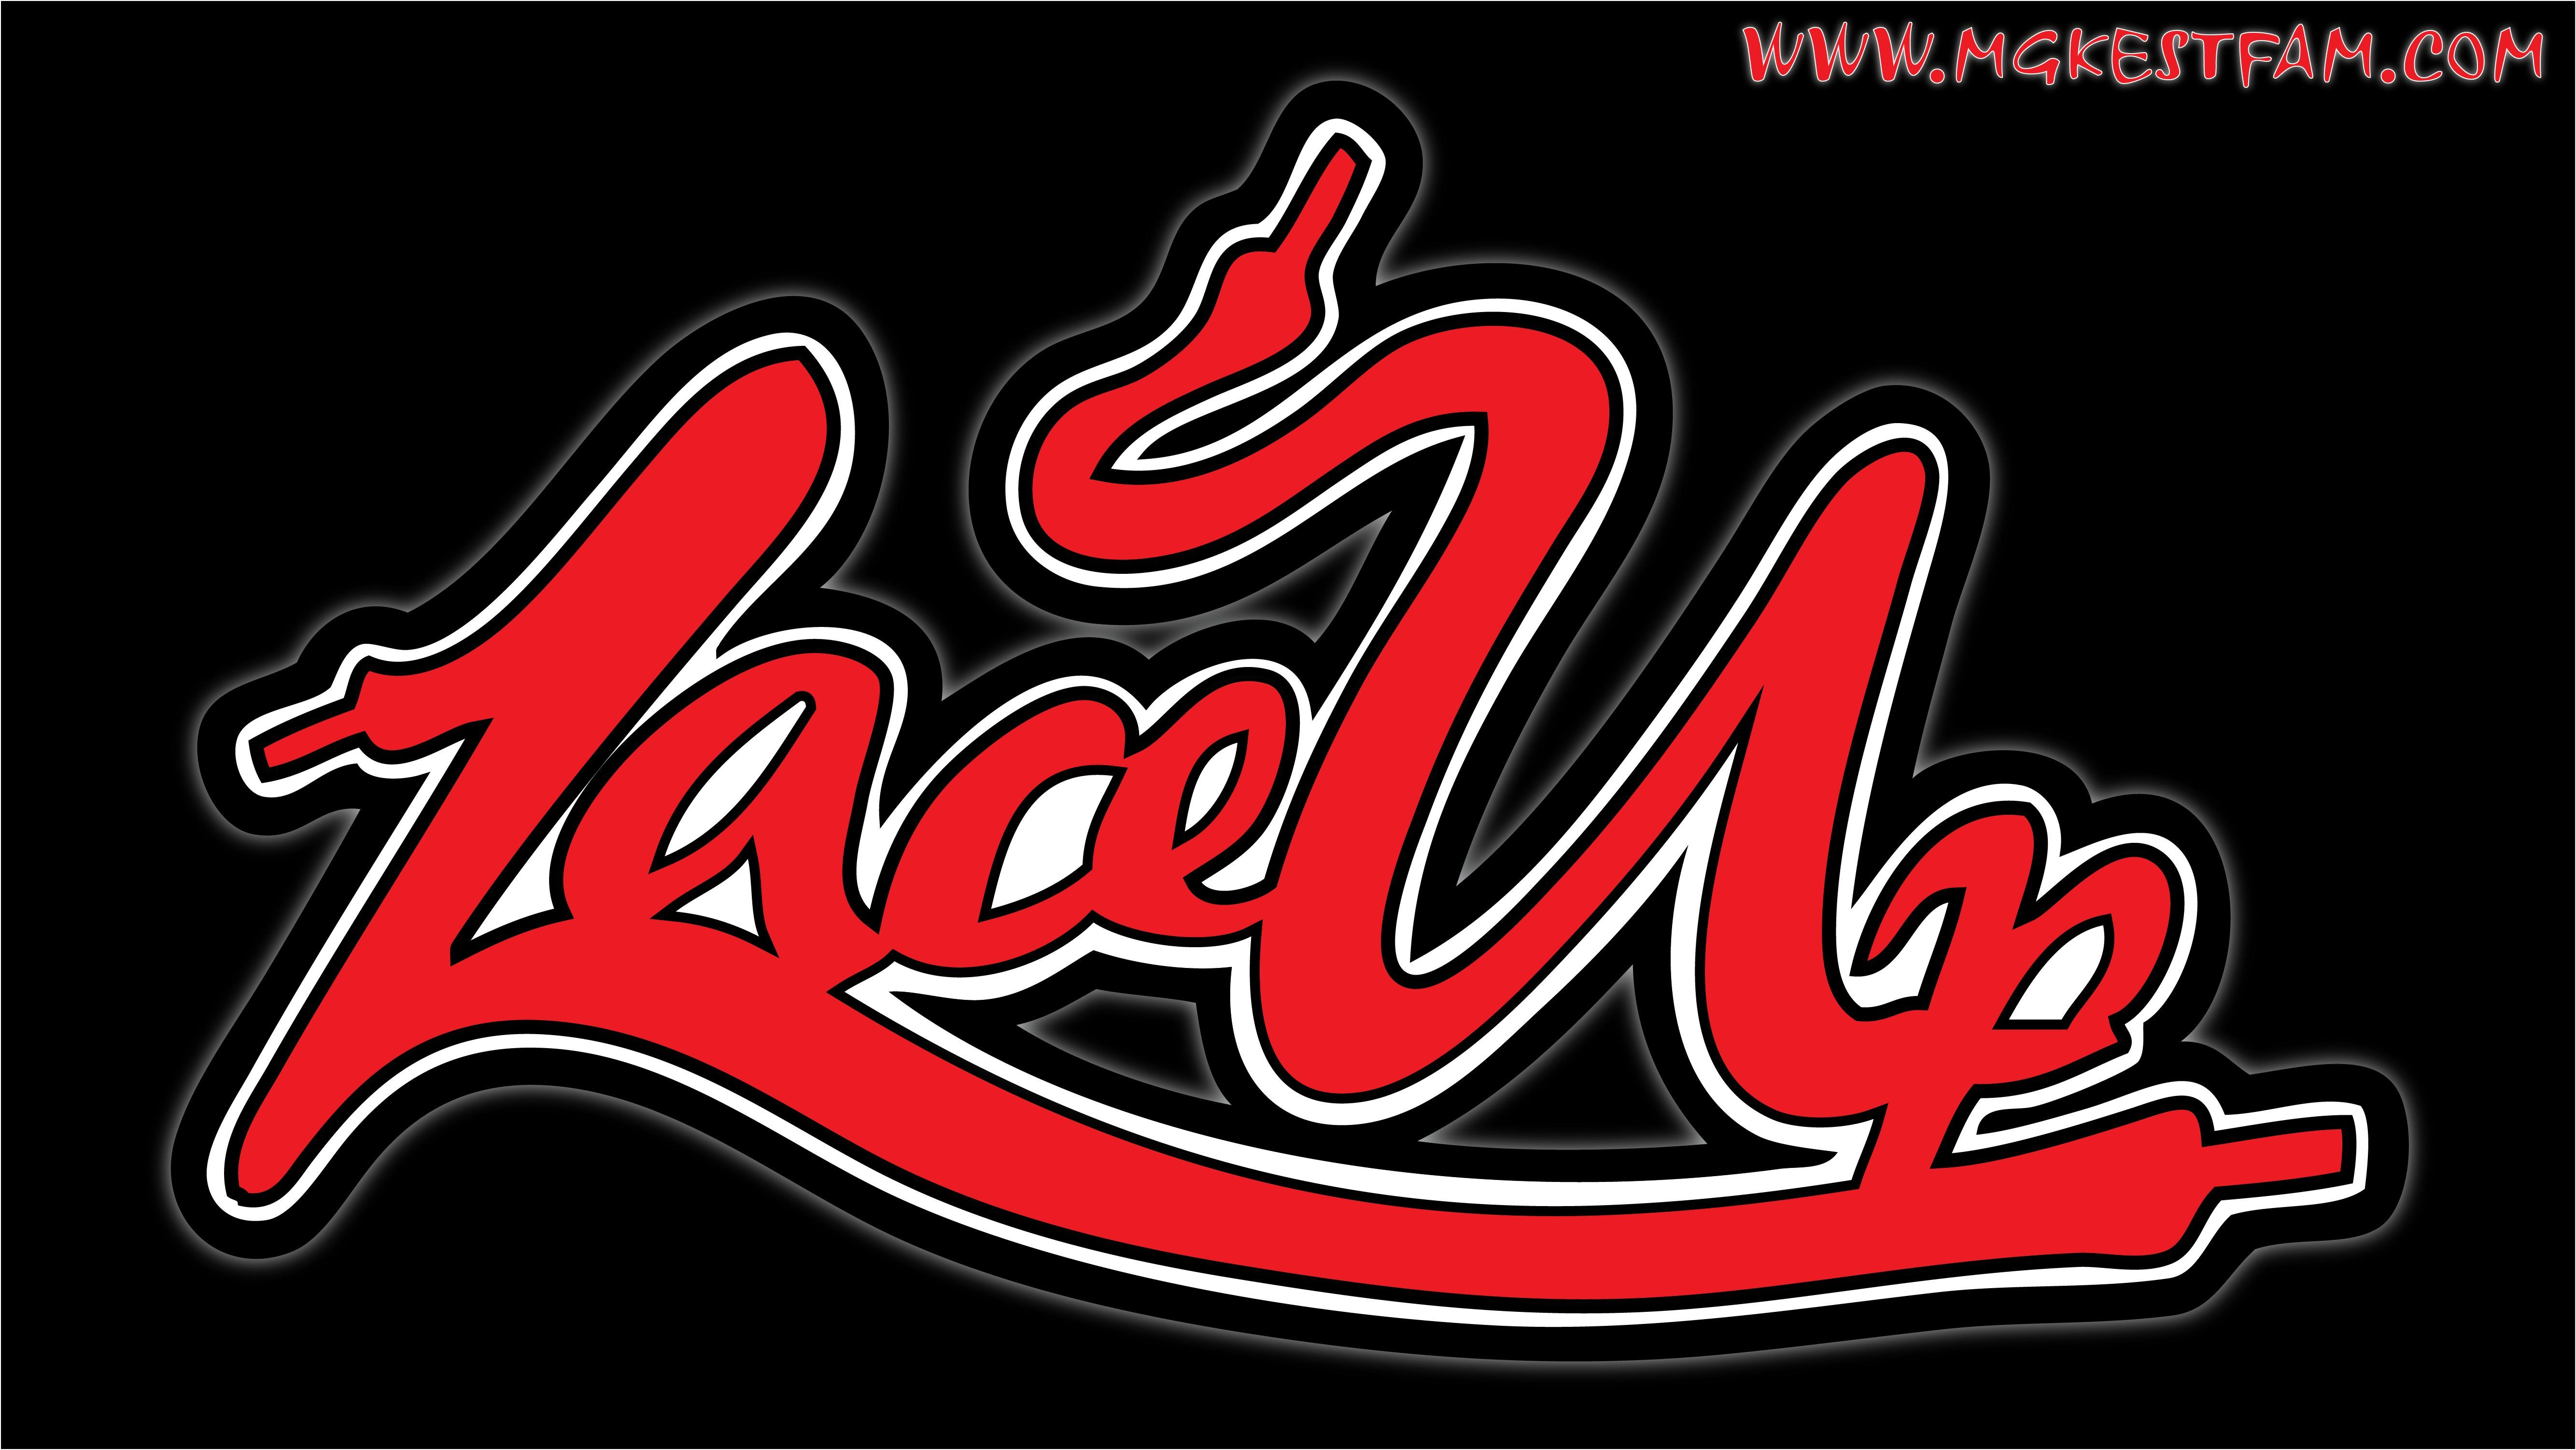 Lace UP MGK wallpaper.